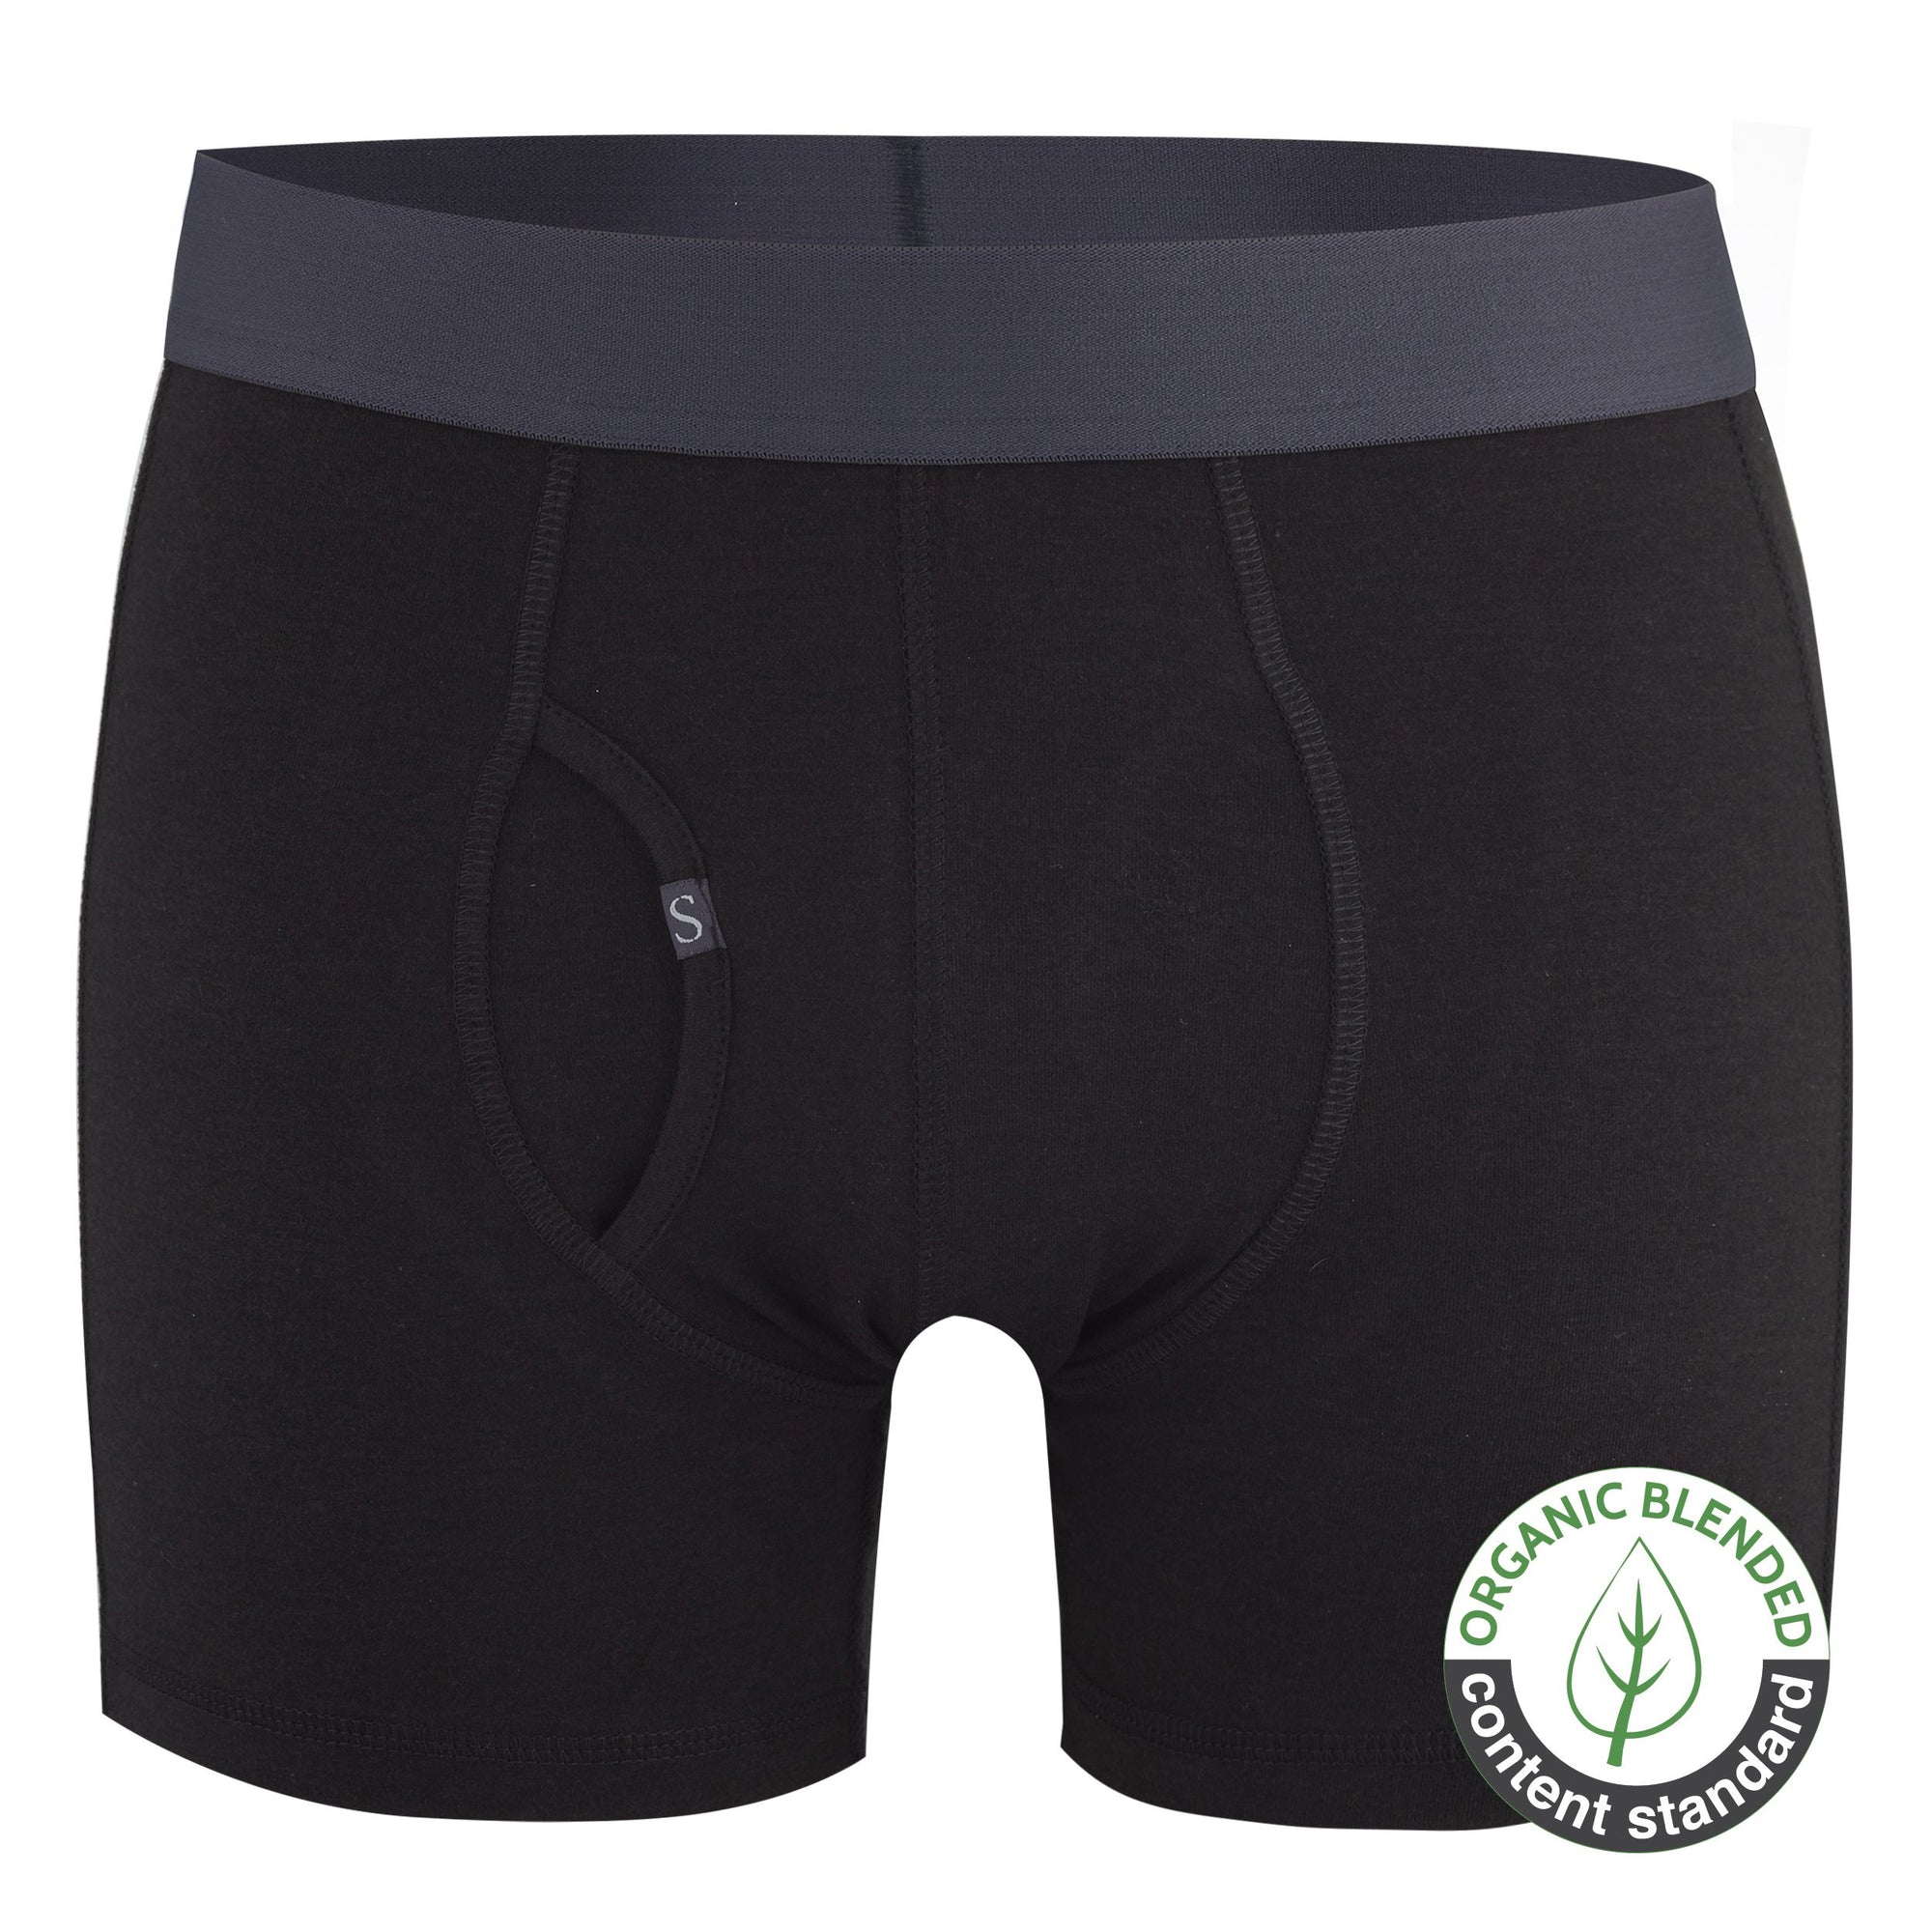 Bamboo Luxe Boxer Brief - Black